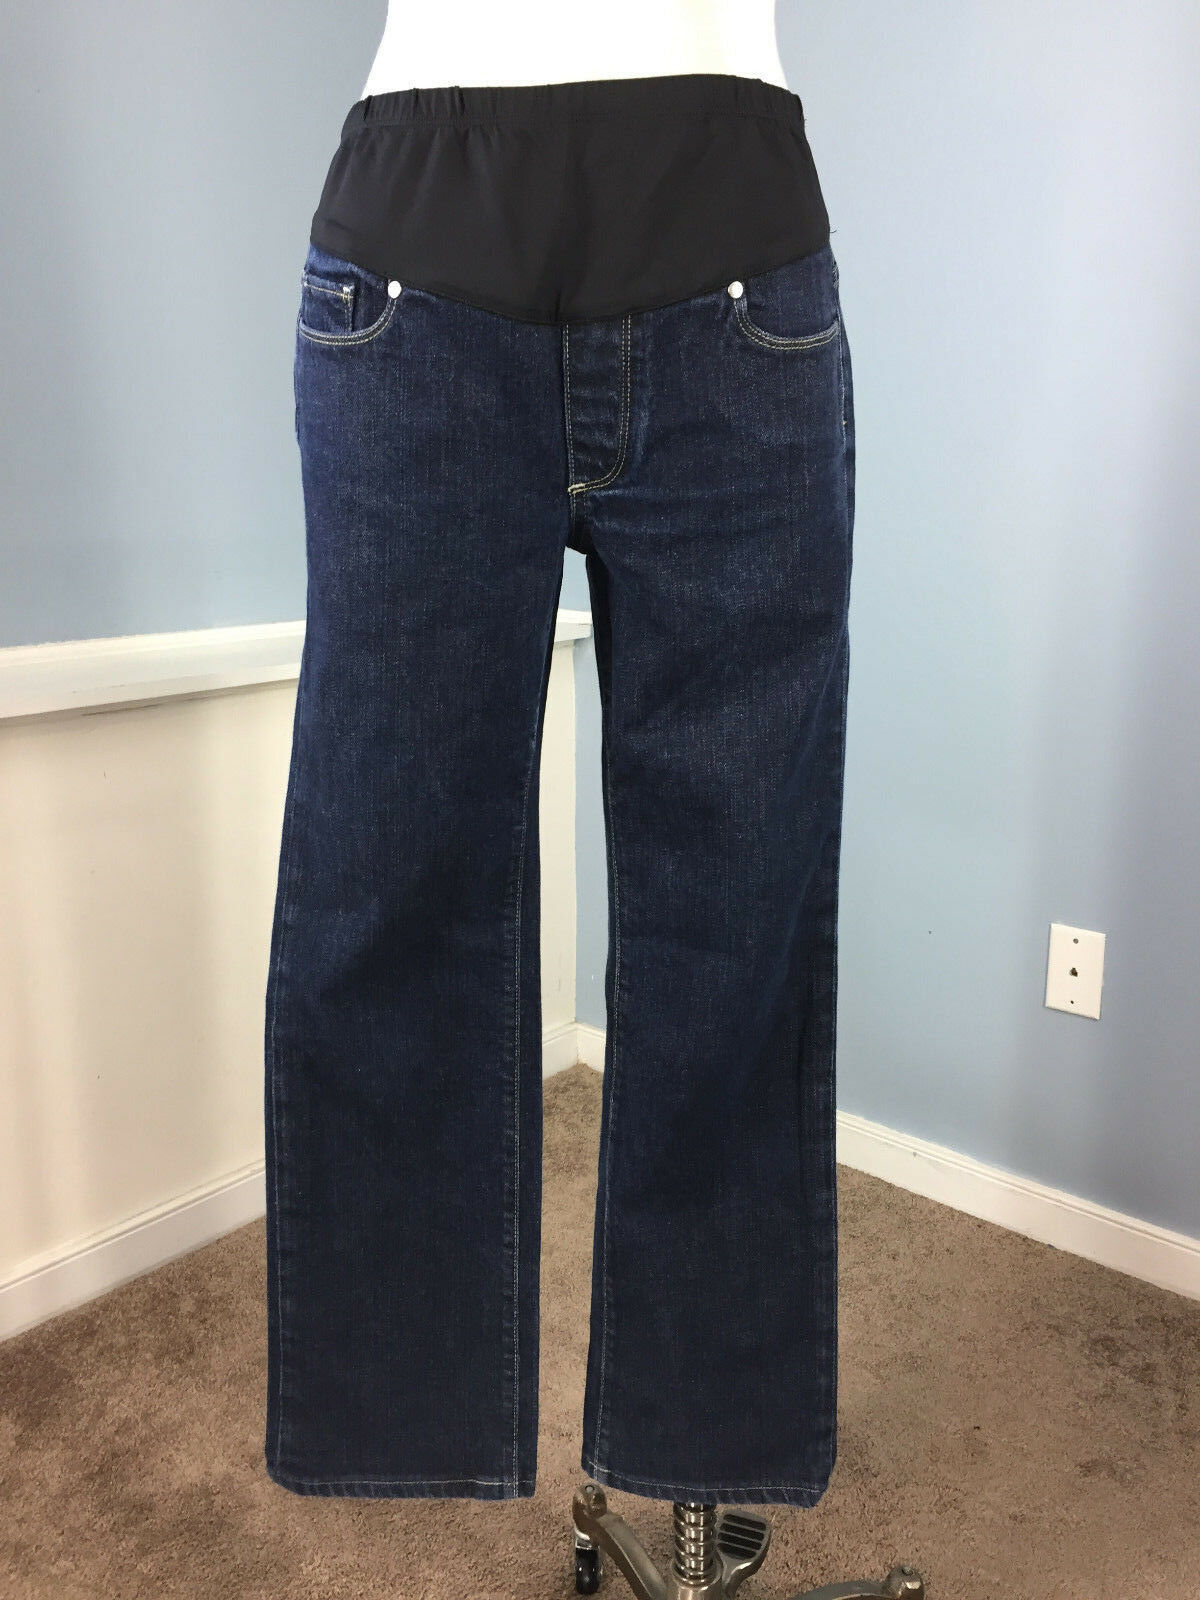 PAIGE Maternity Jeans 31 Melpink Dark wash straight Excellent belly panel